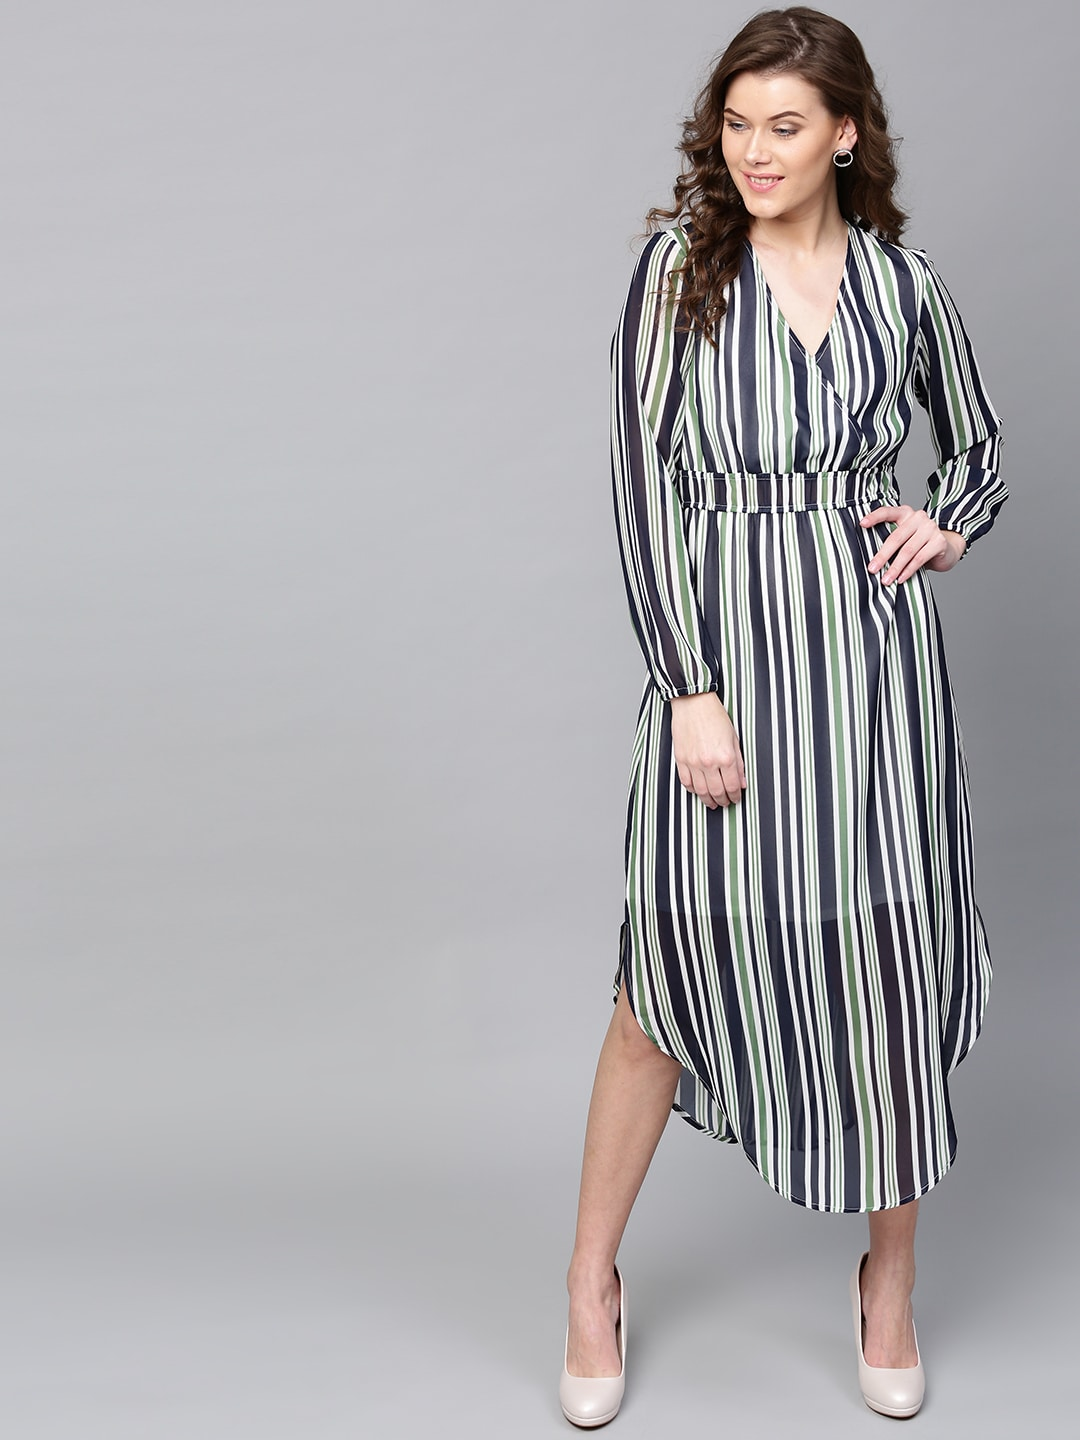 Striped Dress - Buy Striped Dress online in India ed8ff9201